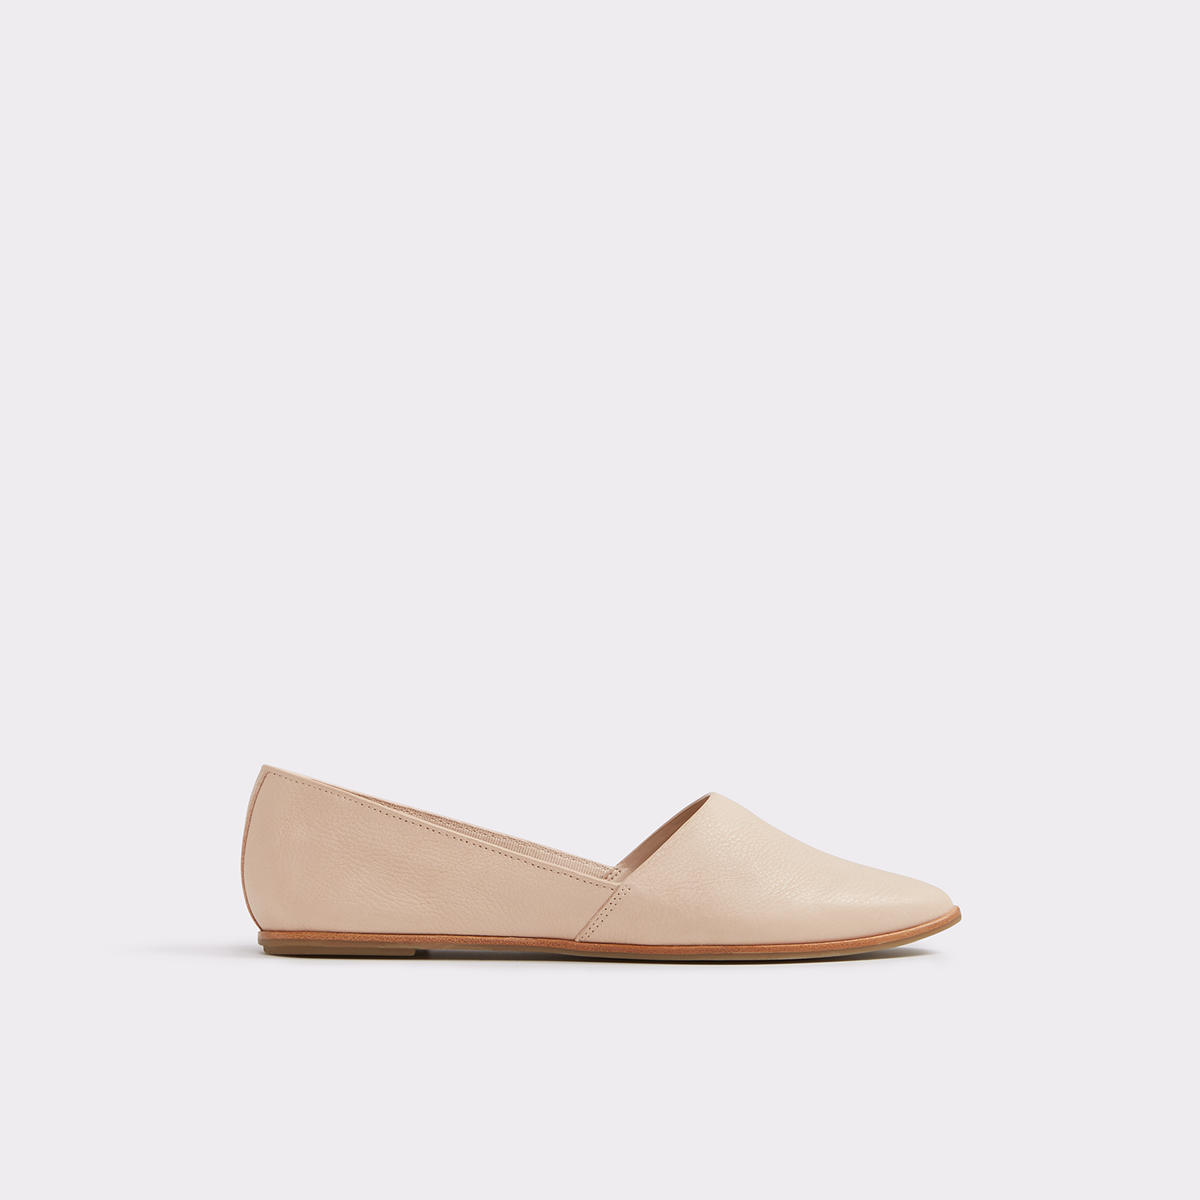 Blanchette Light Pink Women's Oxfords & loafers | ALDO US at Aldo Shoes in Victor, NY | Tuggl